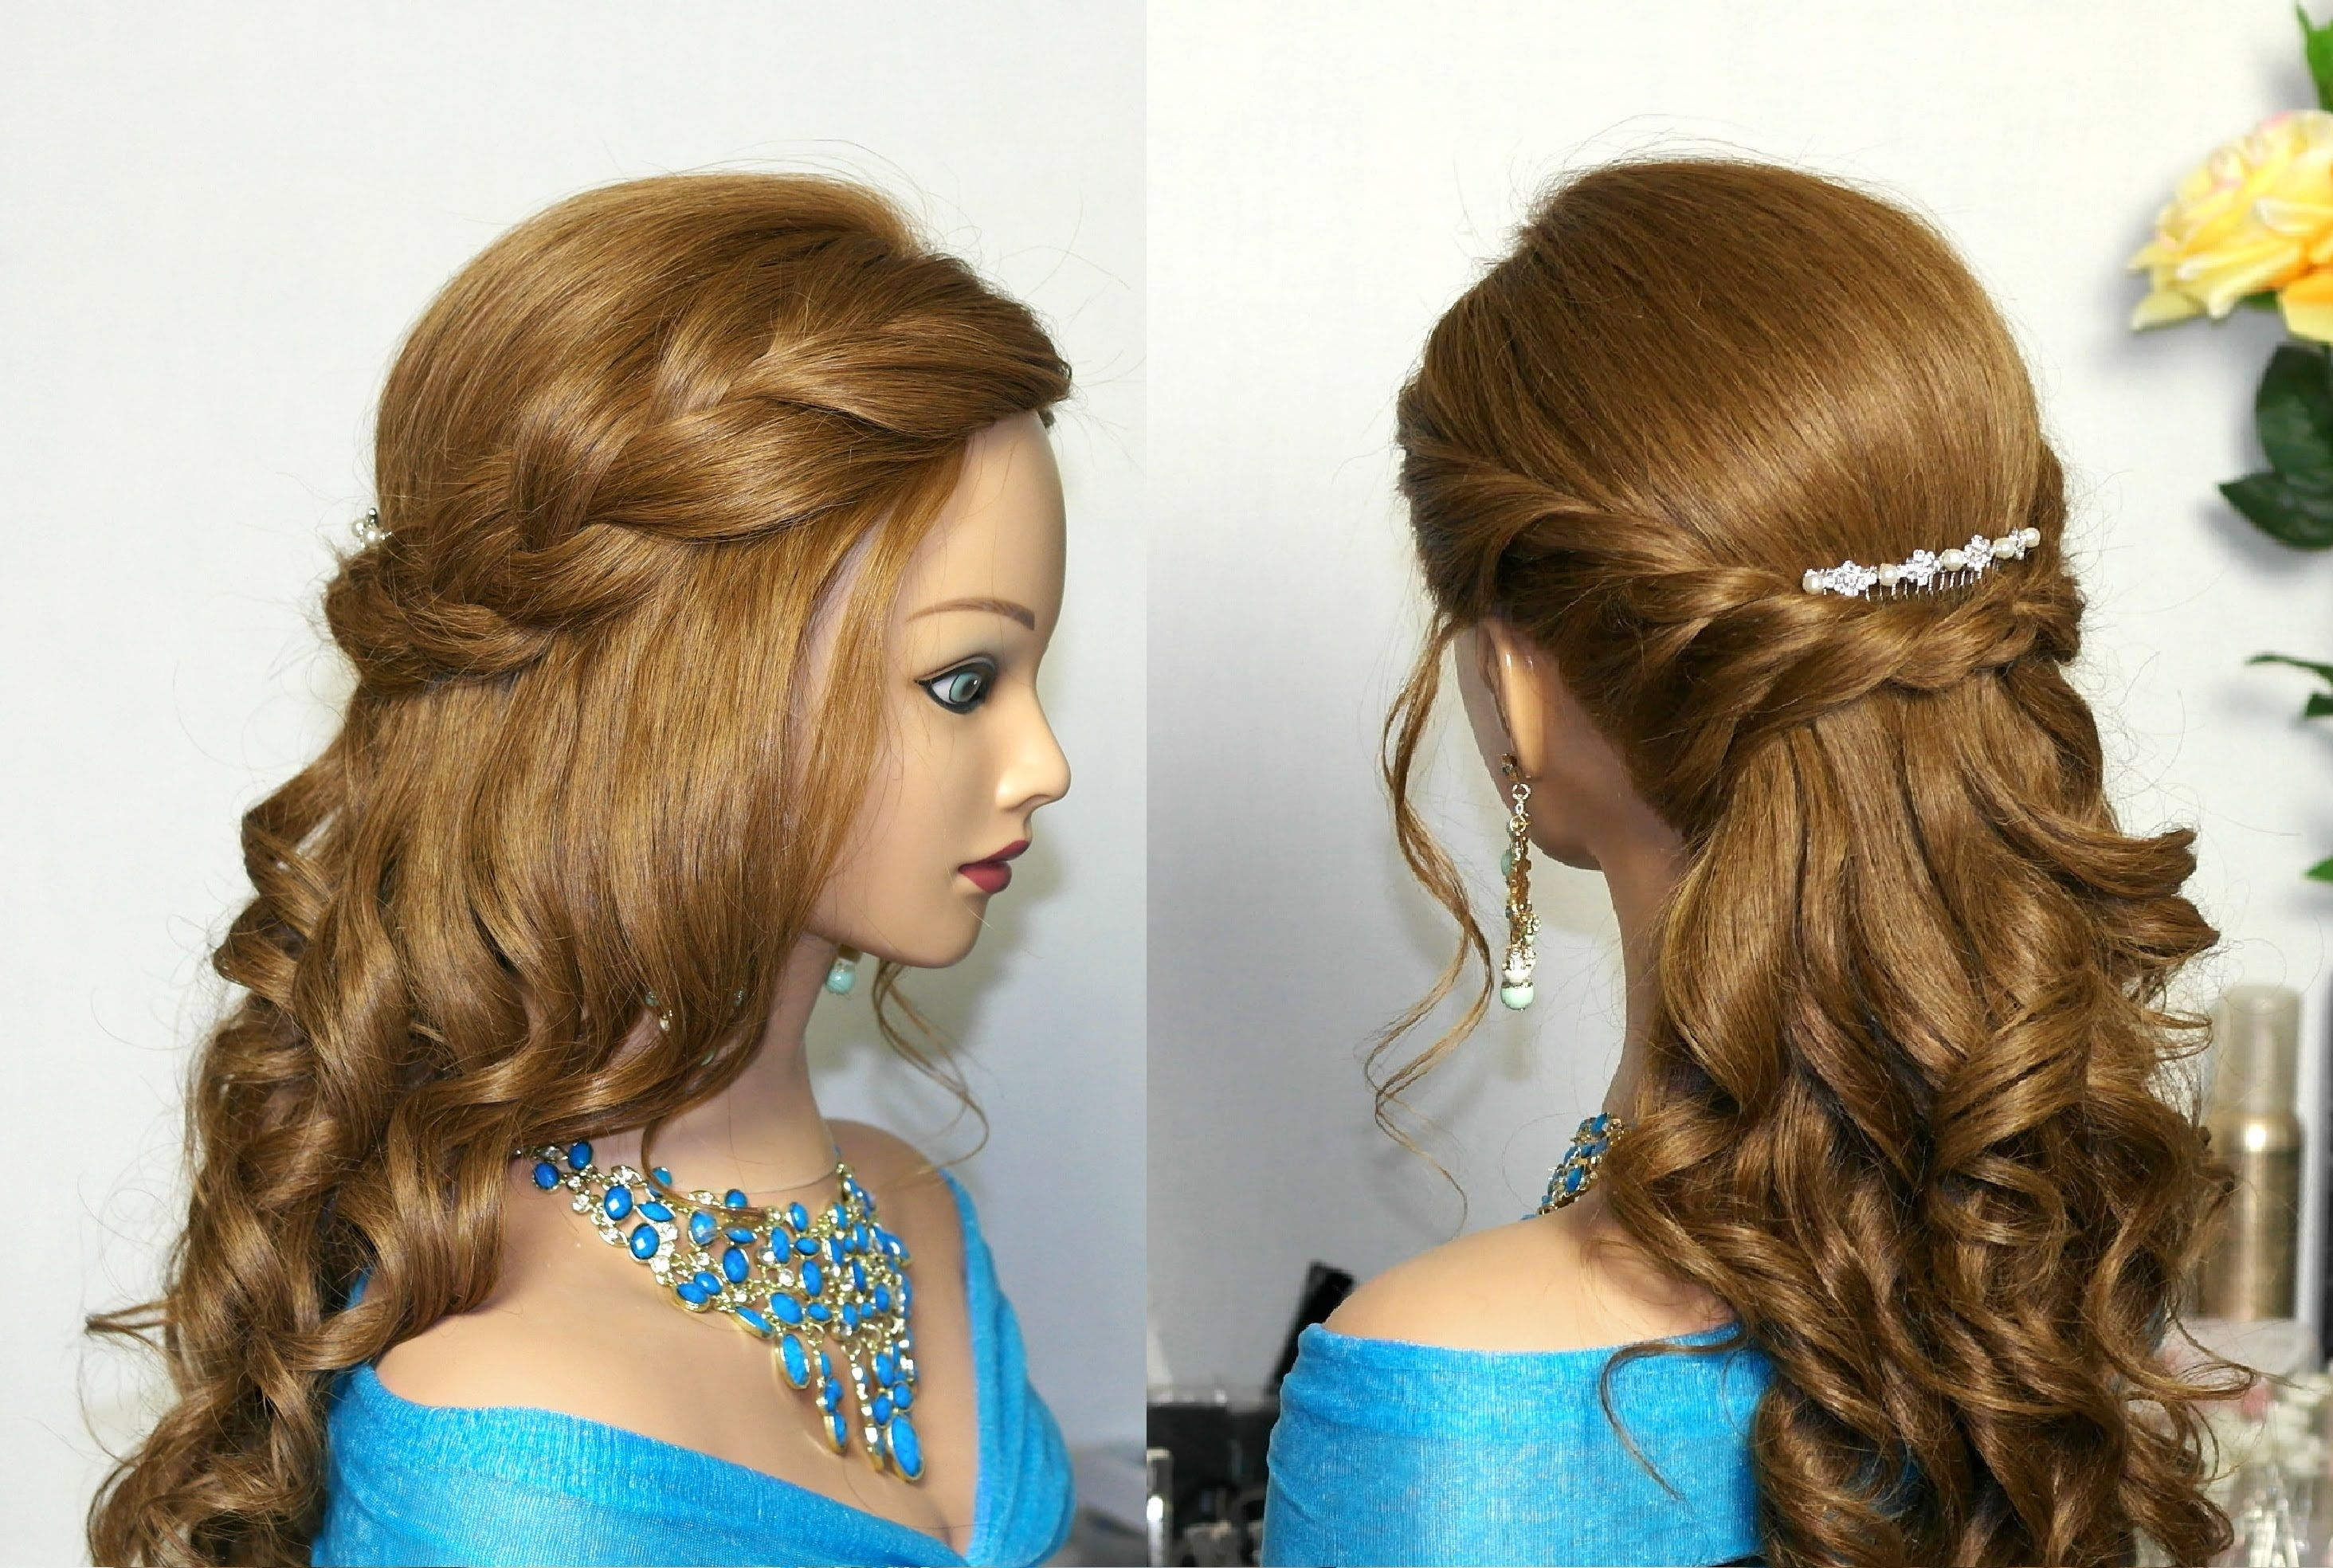 Romantic Prom Hairstyle For Long Hair Romanticheskaya Pricheska Na